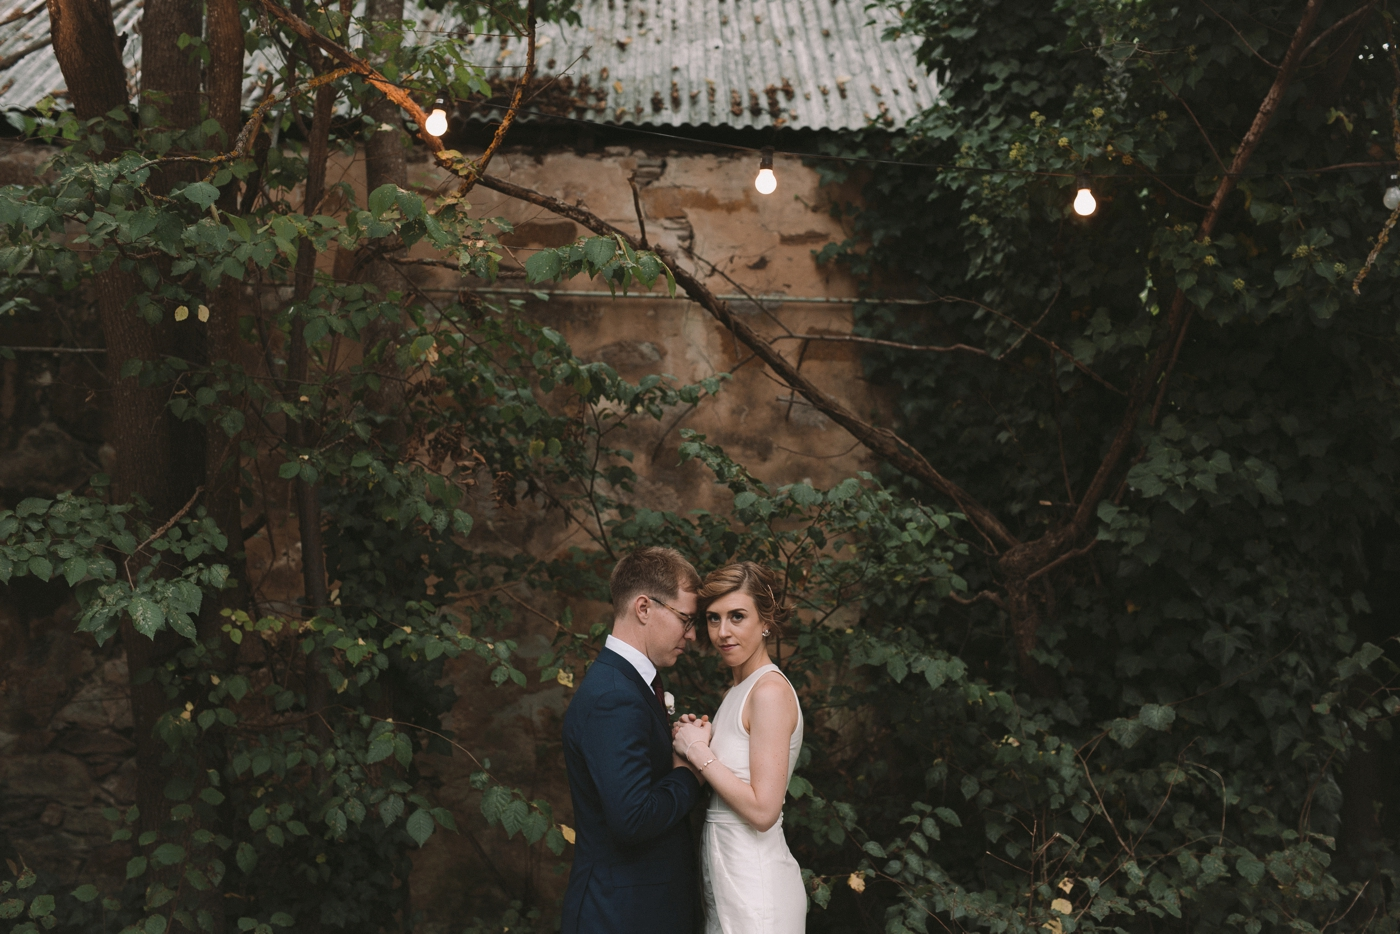 Liam & Bec - White House Adelaide Hills Wedding - Natural Wedding Photography in Adelaide - www.katherineschultzphotography.com 52